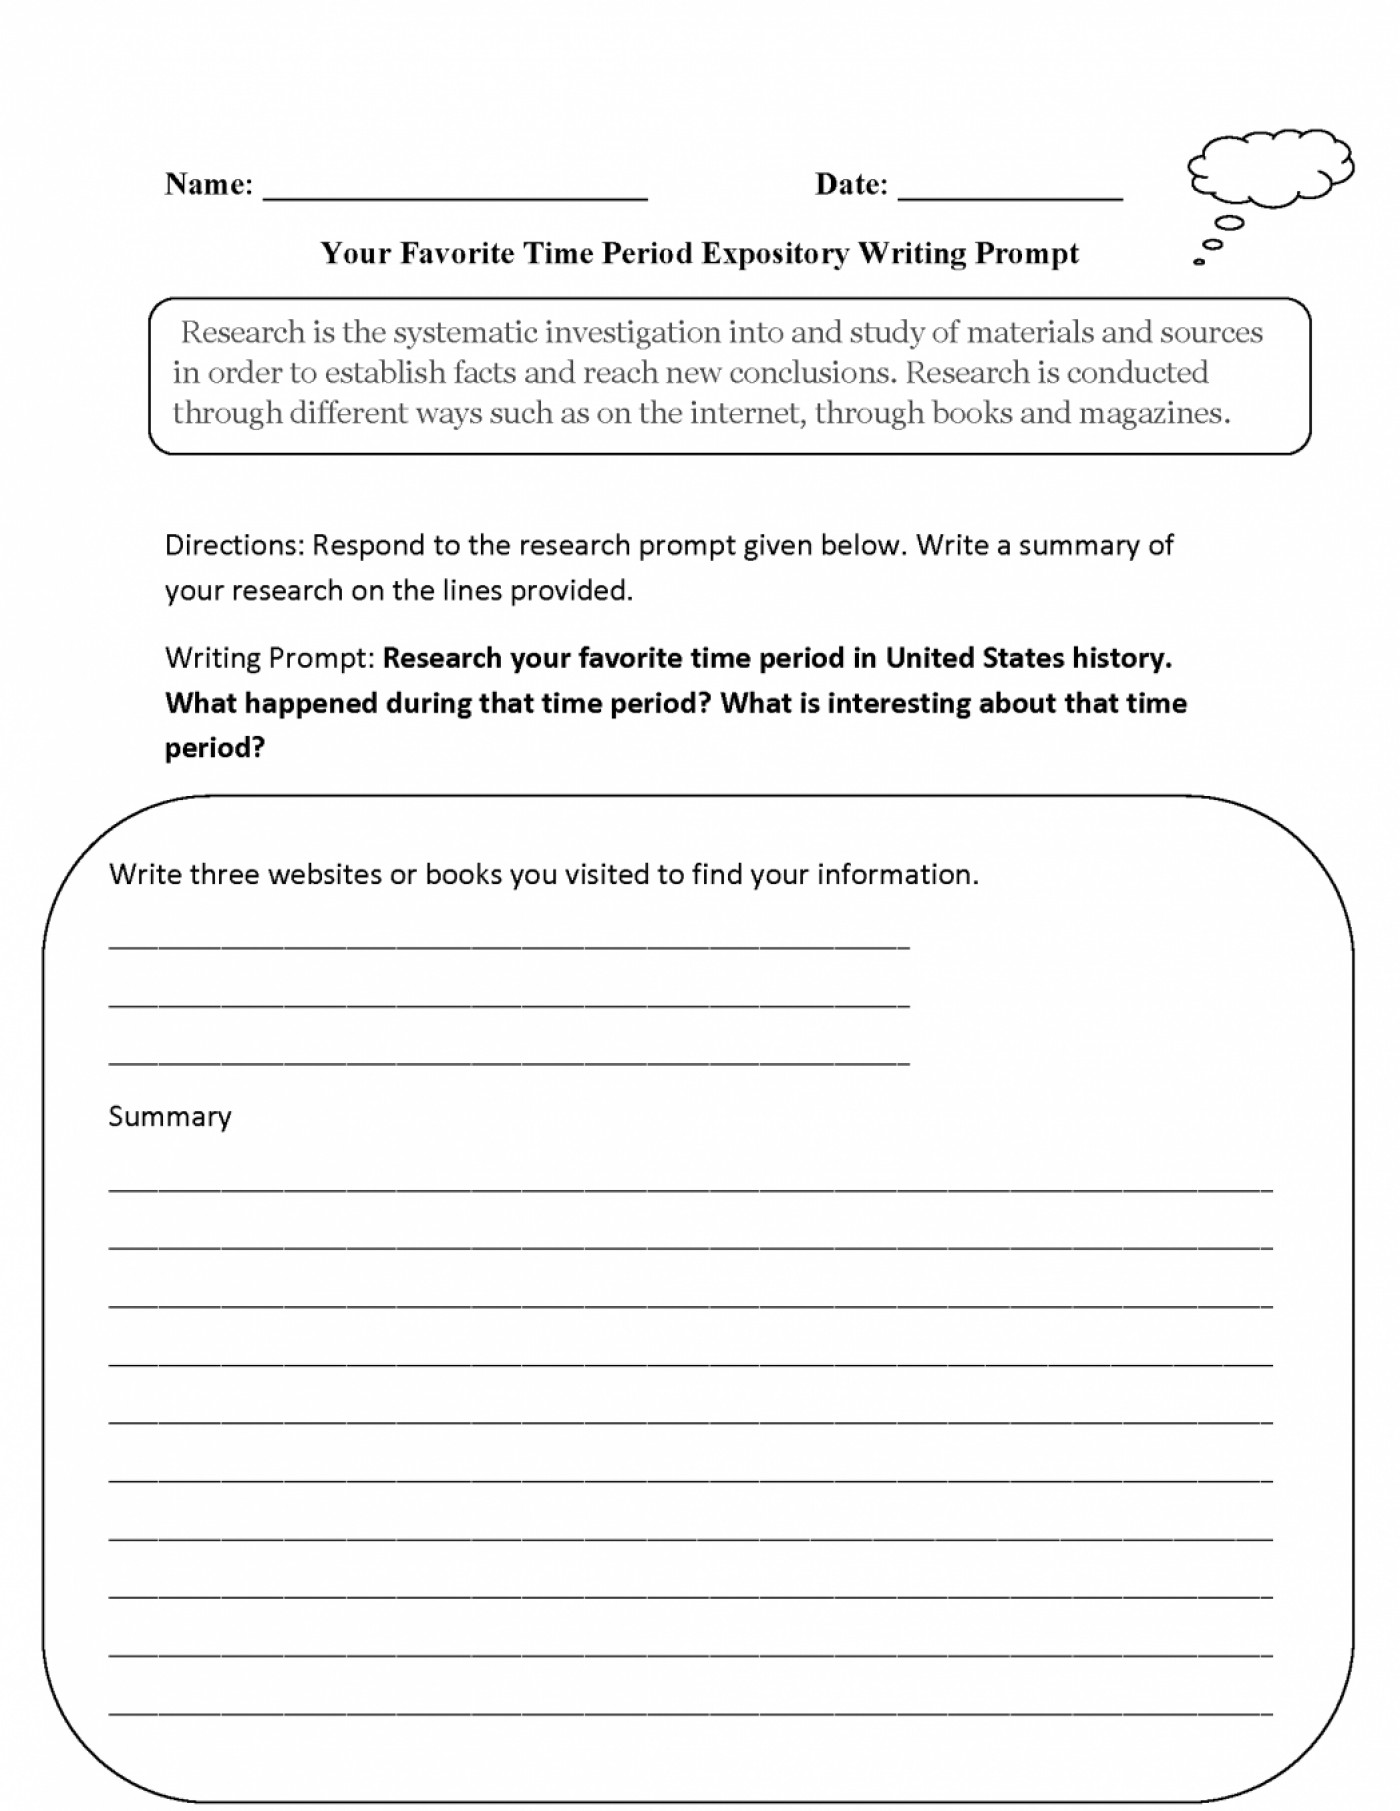 018 Essay Example Good Informative Topics Prompts Favorite Time Period Expository Writing P To Write An On The Topic Of Immigration Remarkable 2018 For High School Prompt 4th Grade 1400